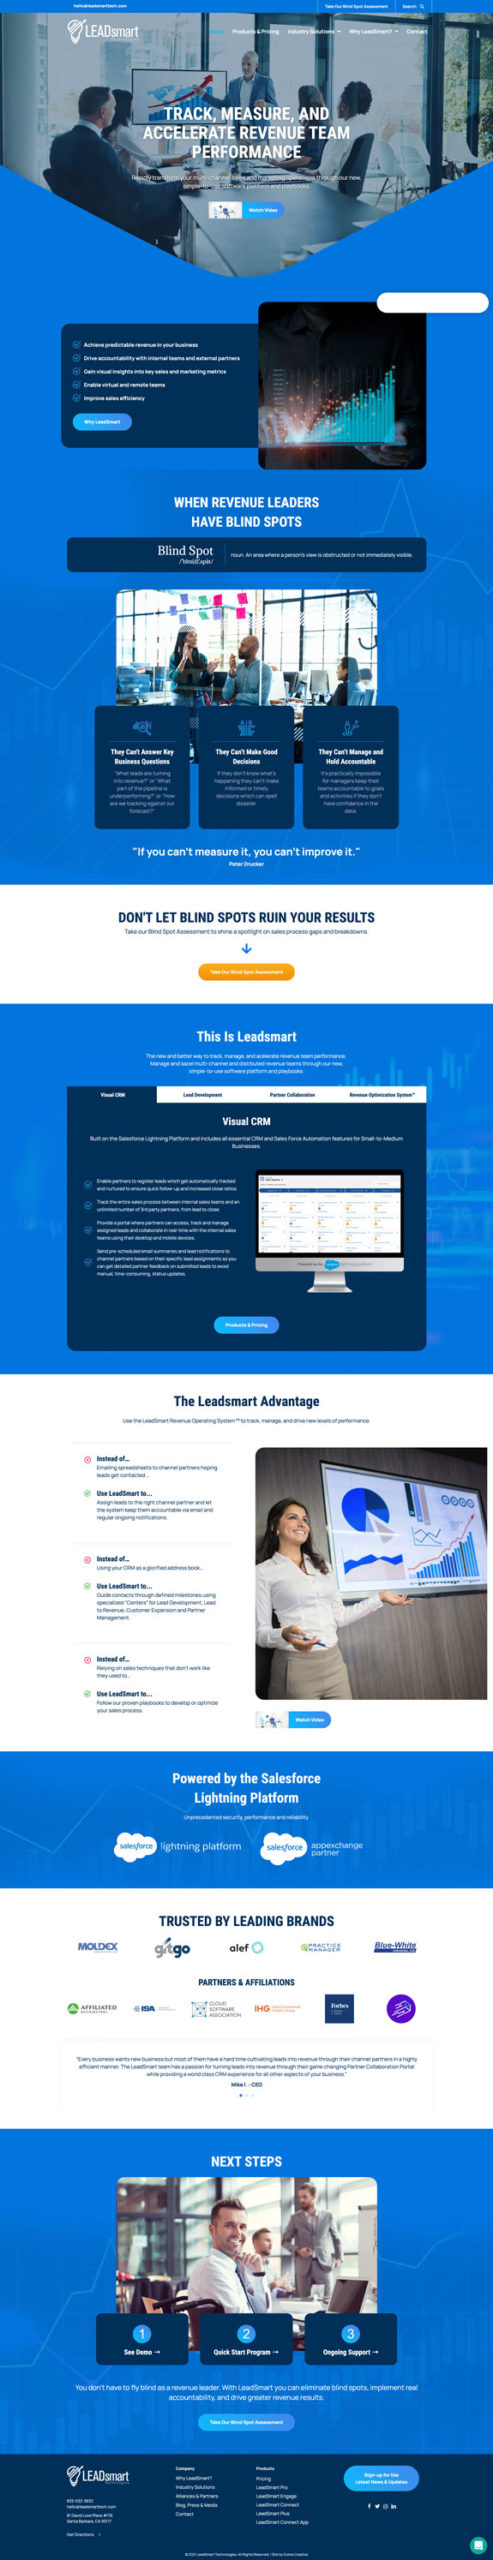 LeadSmart Technologies website redesign